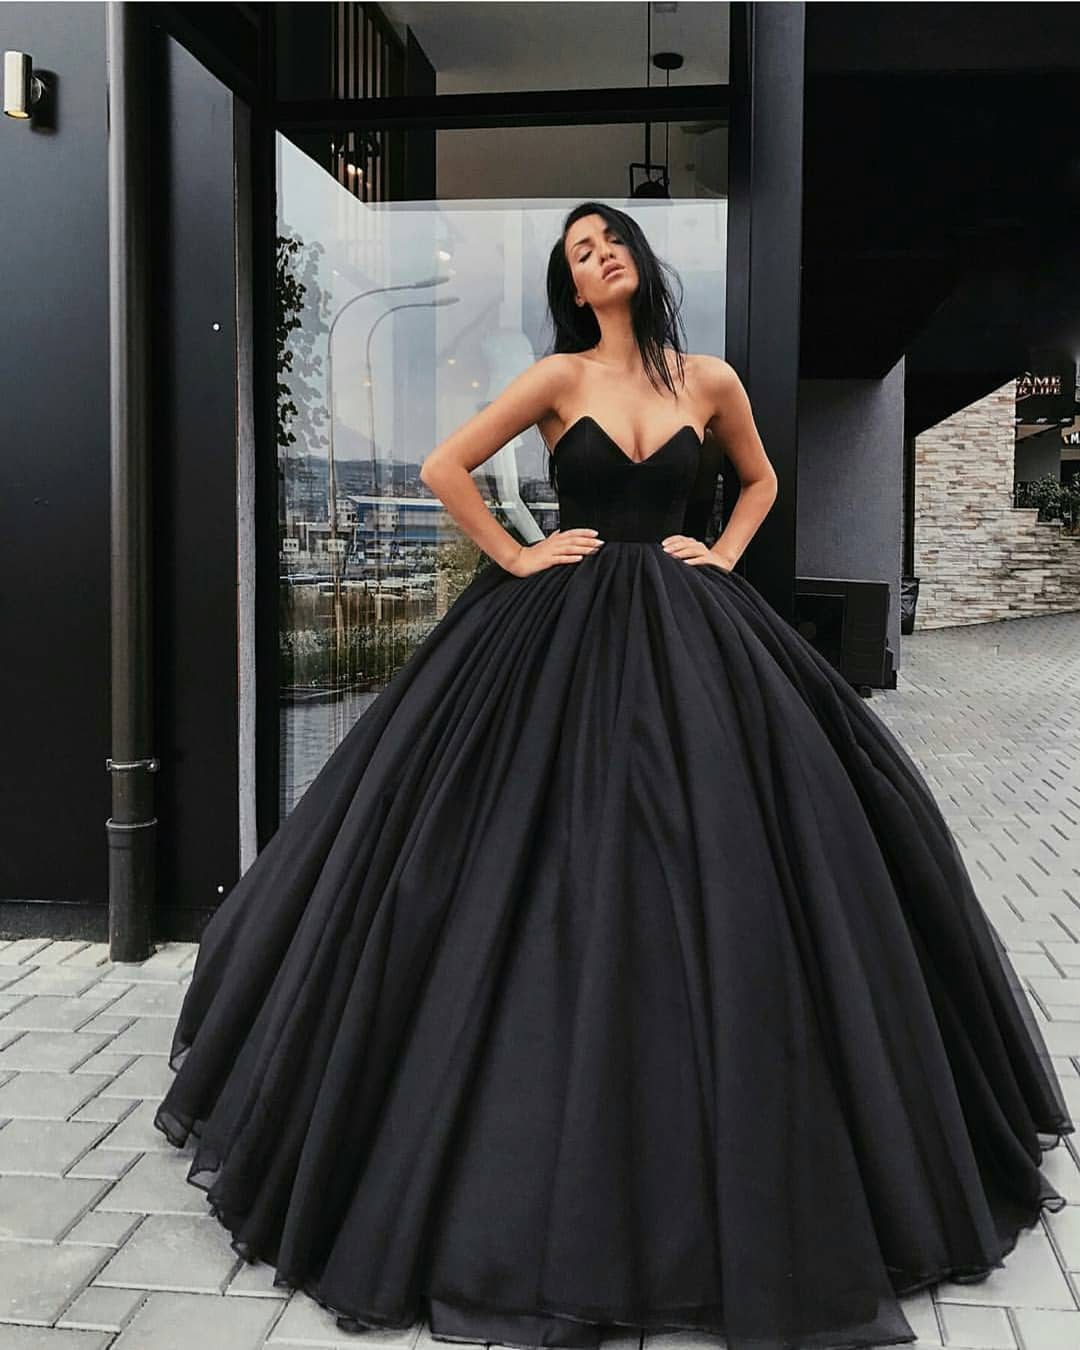 Black Ball Gown Prom Dress V Neck Strapless Floor Length Plus Size Formal  Evening Dresses Long Party Gowns sold by loveu